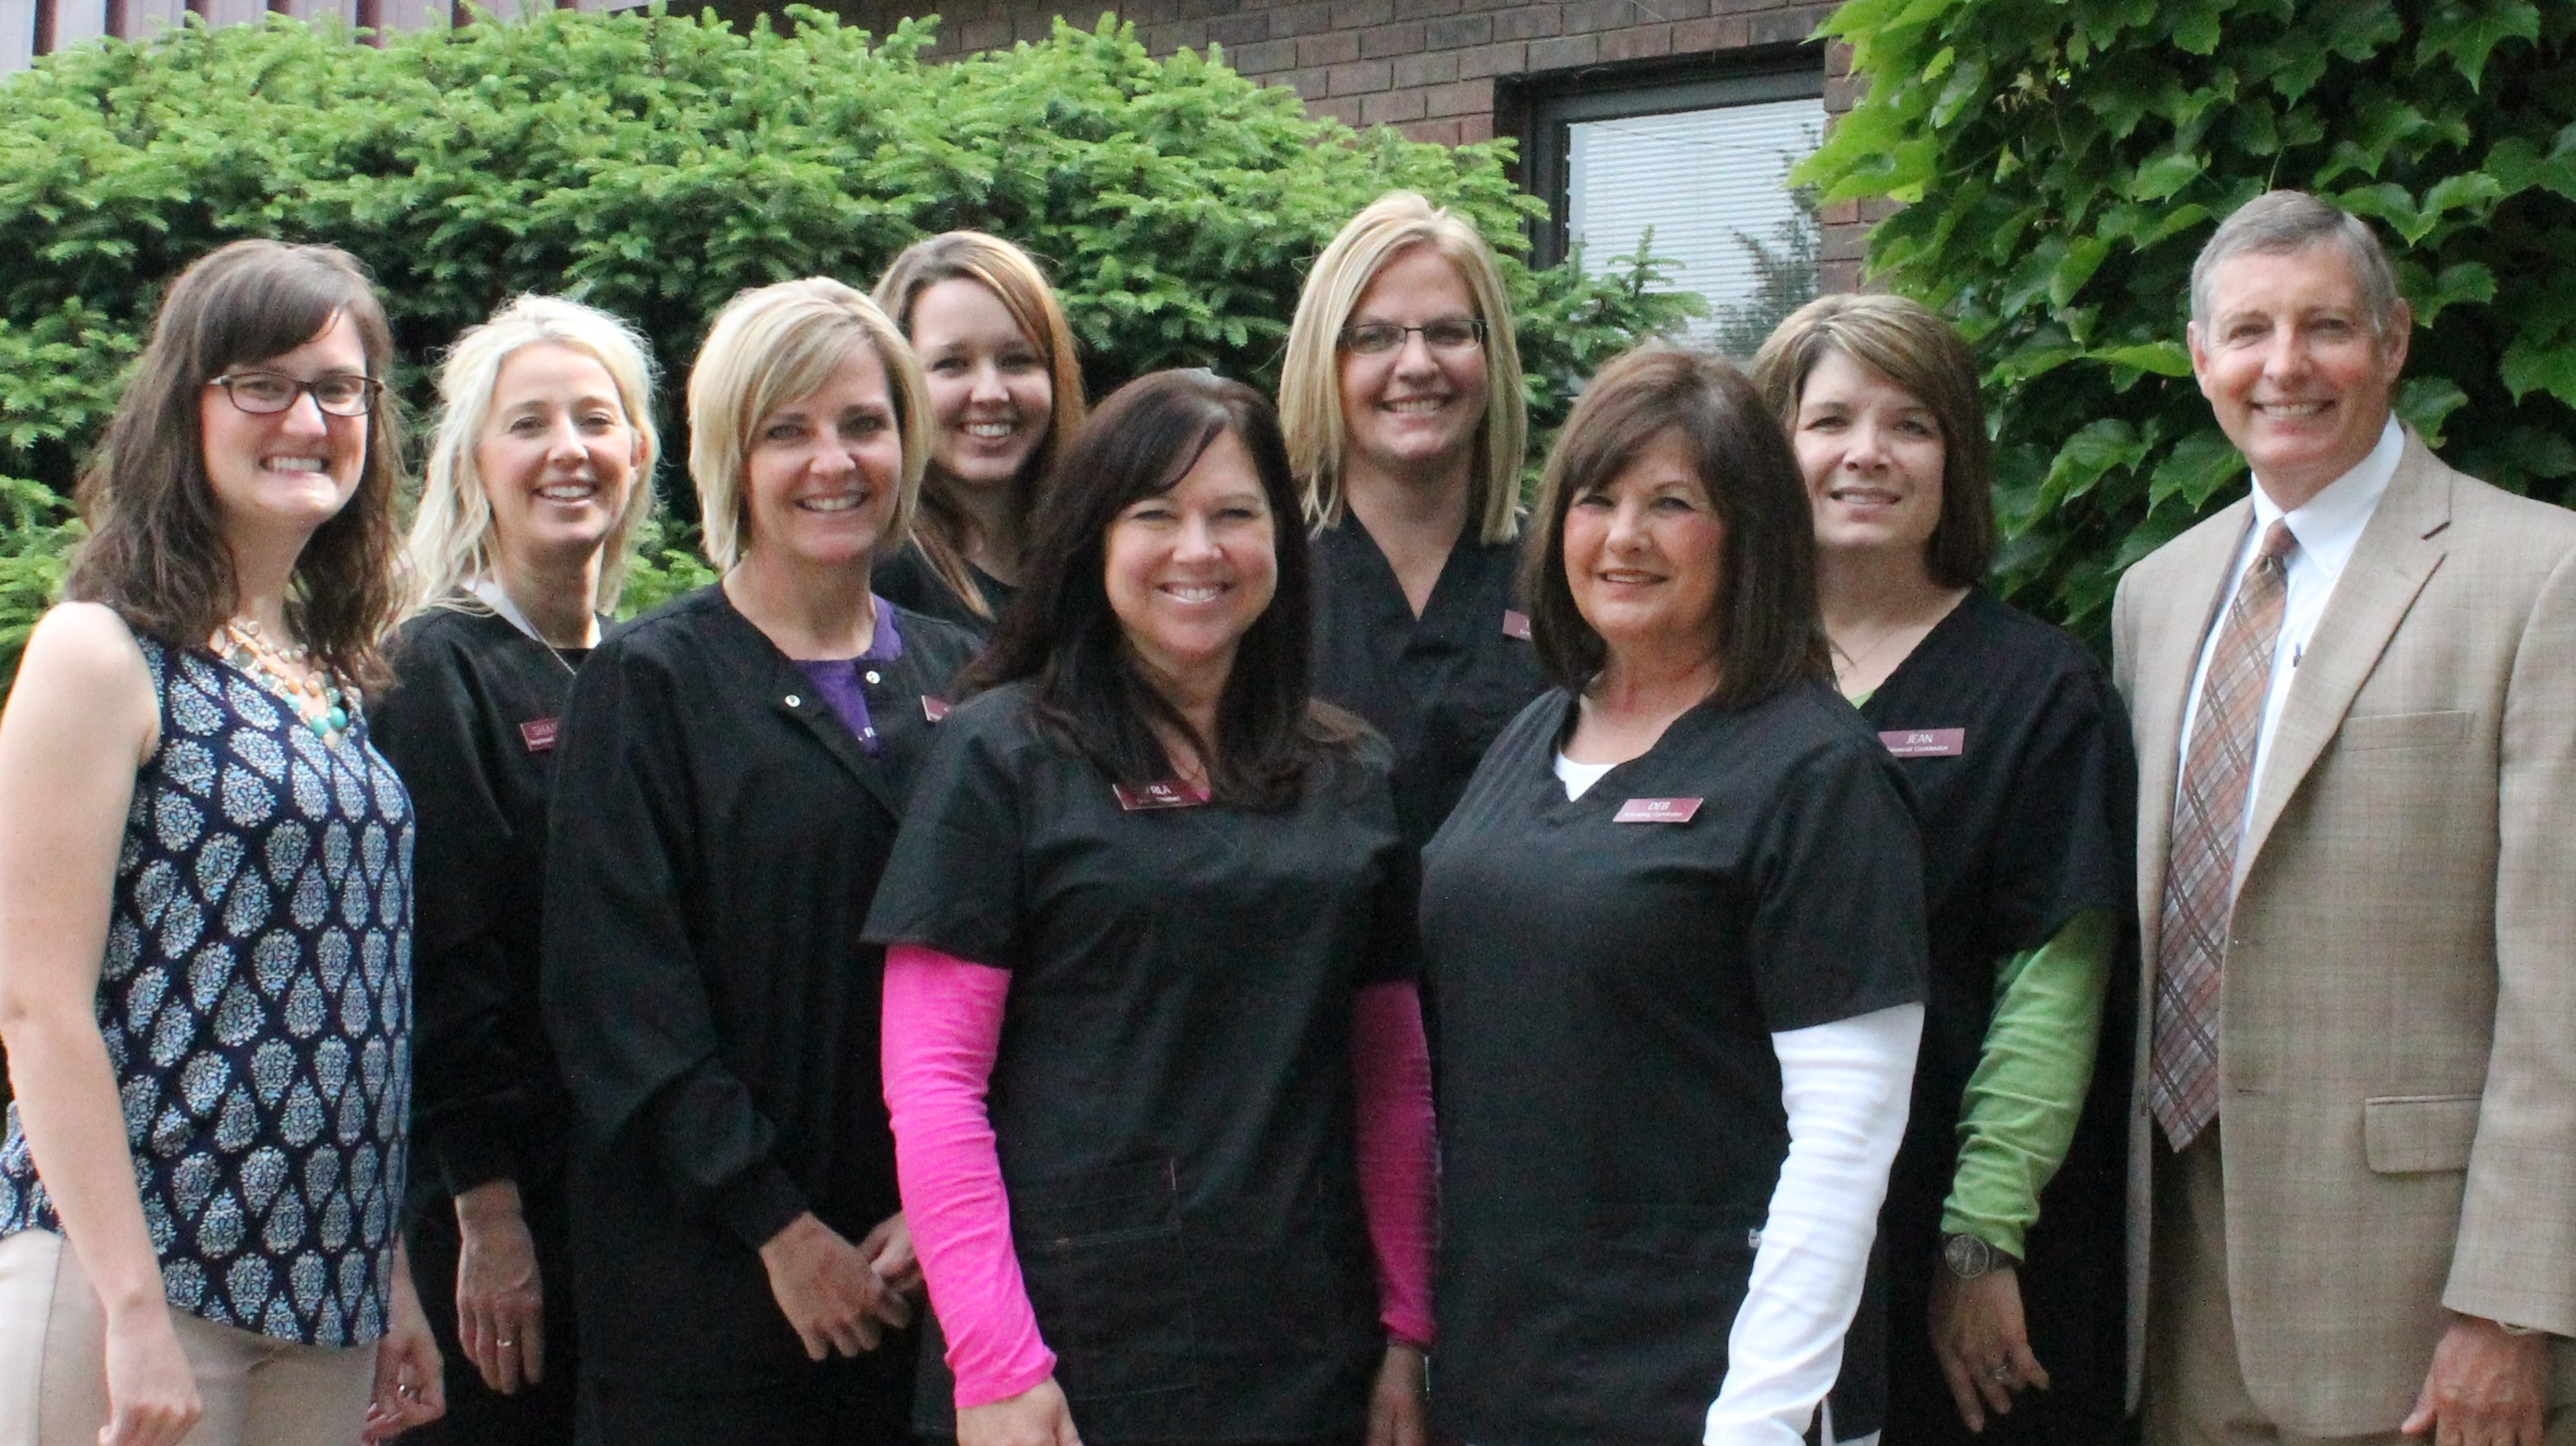 From left to right:Dr. Bethany J. Olson, Shannon Ostransky (dental hygienist), Sara Kellogg (dental hygienist), Earlene Bedsole (dental assistant), Carla Walters (dental assistant), Tiffany Siffring (dental assistant), Deb Siffring (scheduling), Jean Miller (financial), Dr. Nicholas R. Saeger